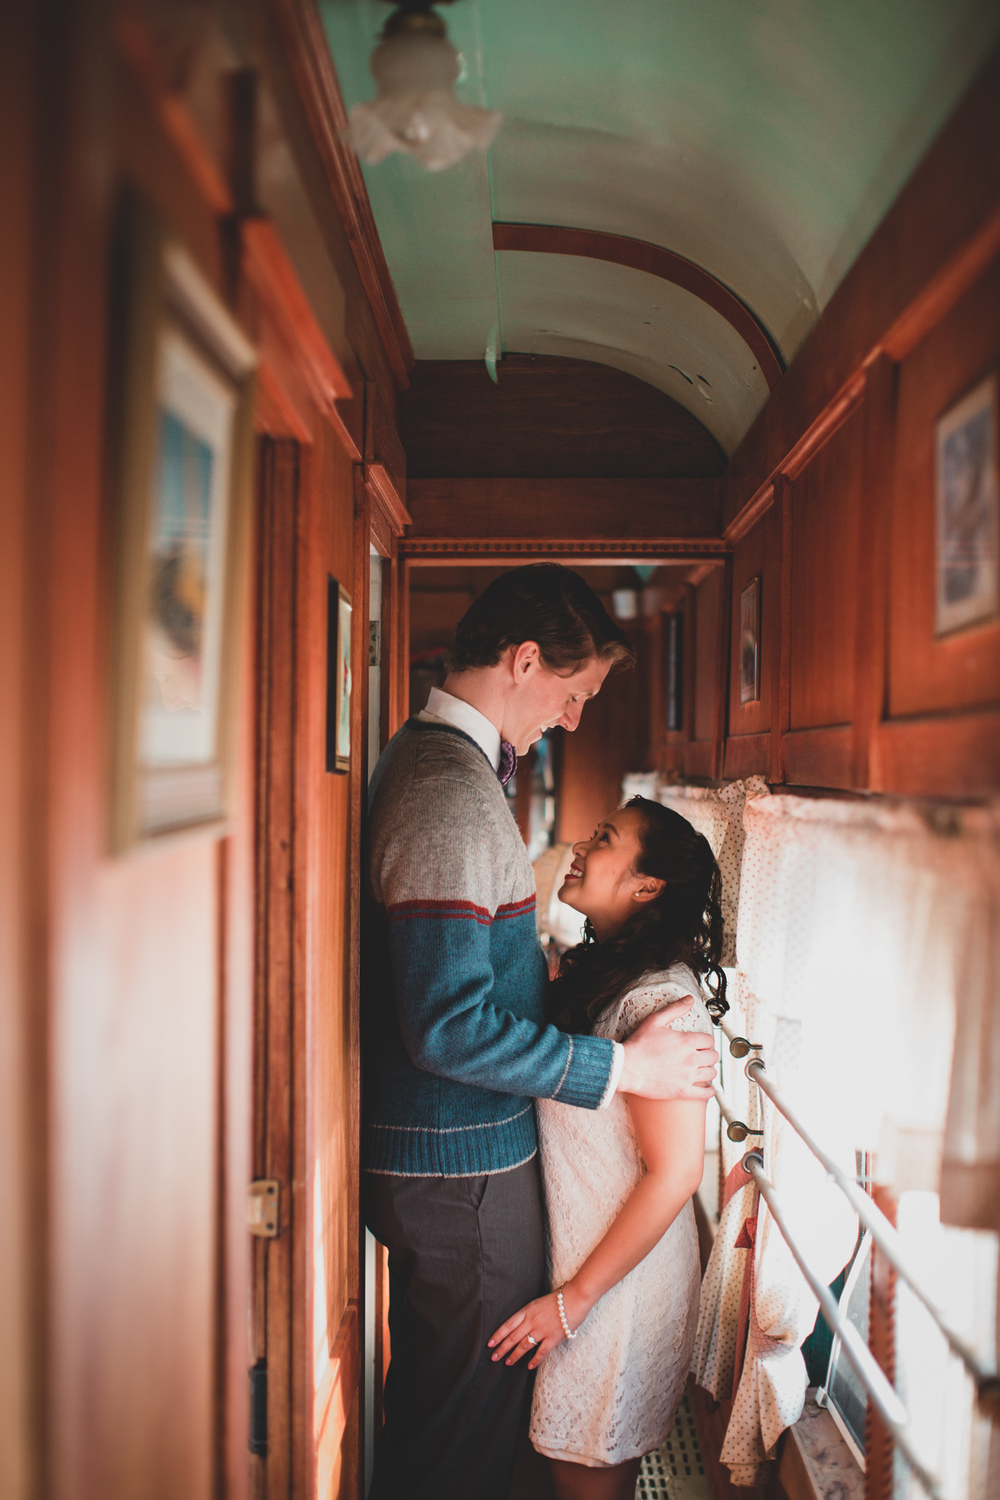 Engagement session inside old train